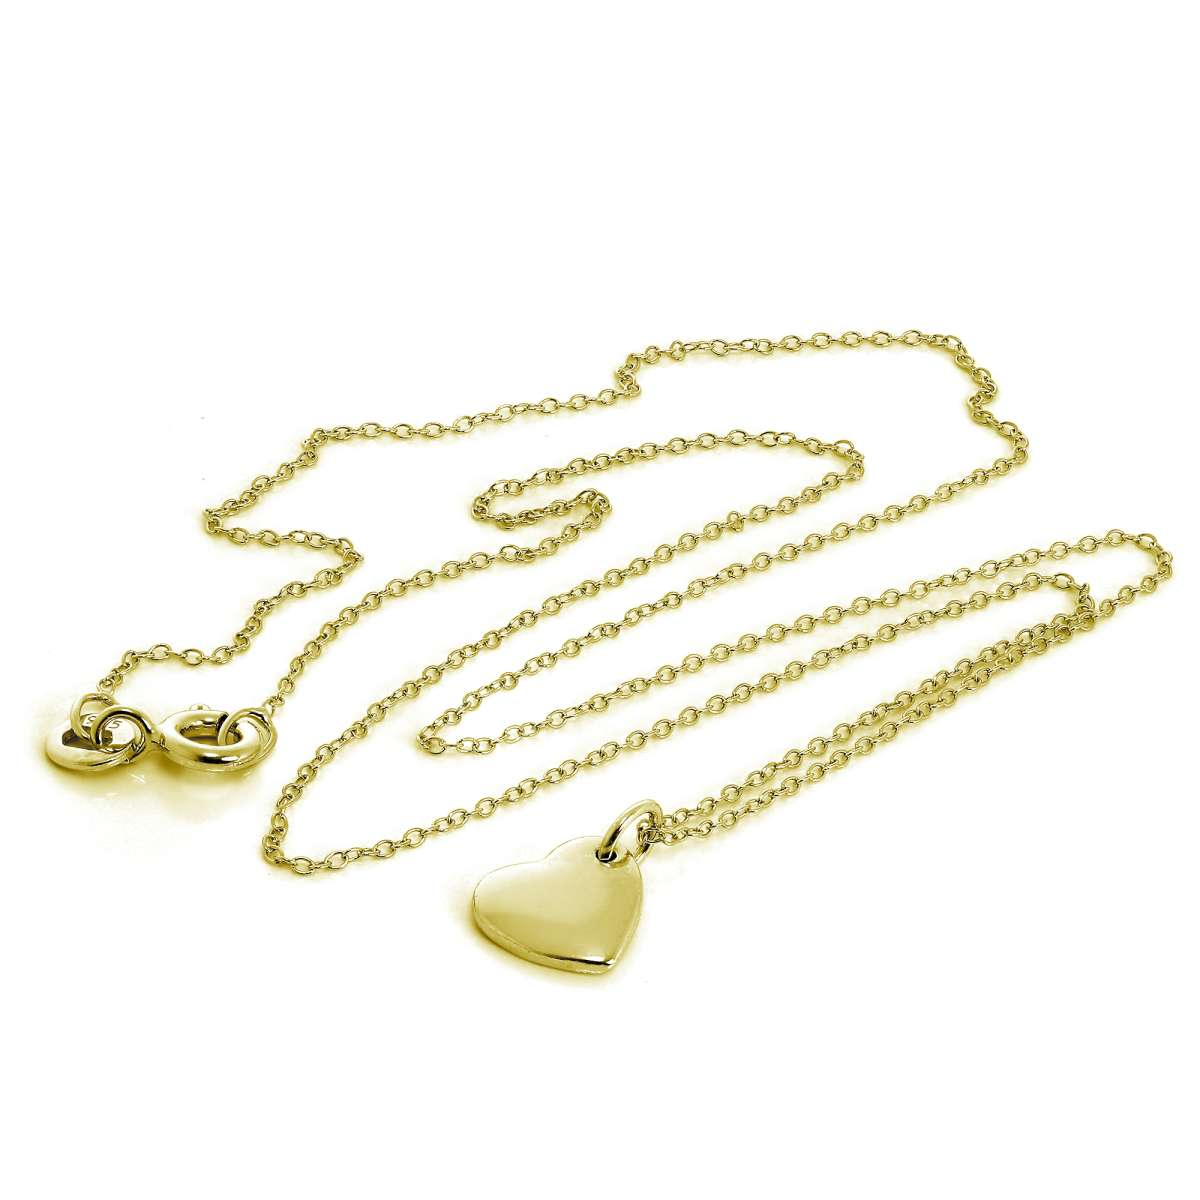 Alterative image for Gold Plated Sterling Silver Engravable Heart Necklace 18 Inches